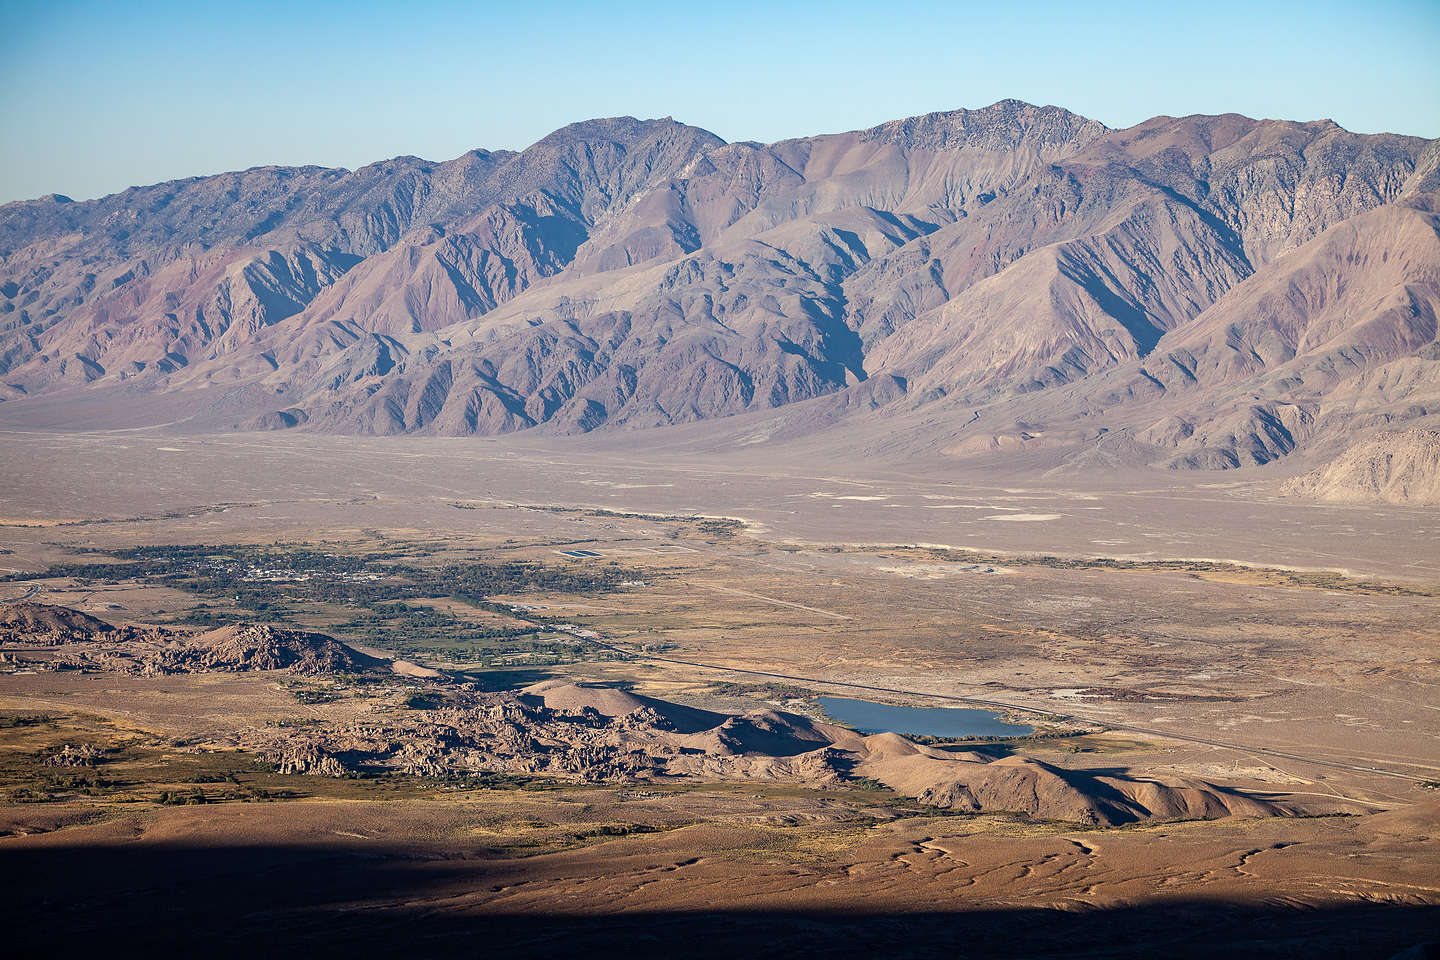 Looking down on the Alabama Hills from Horseshoe Meadow Road